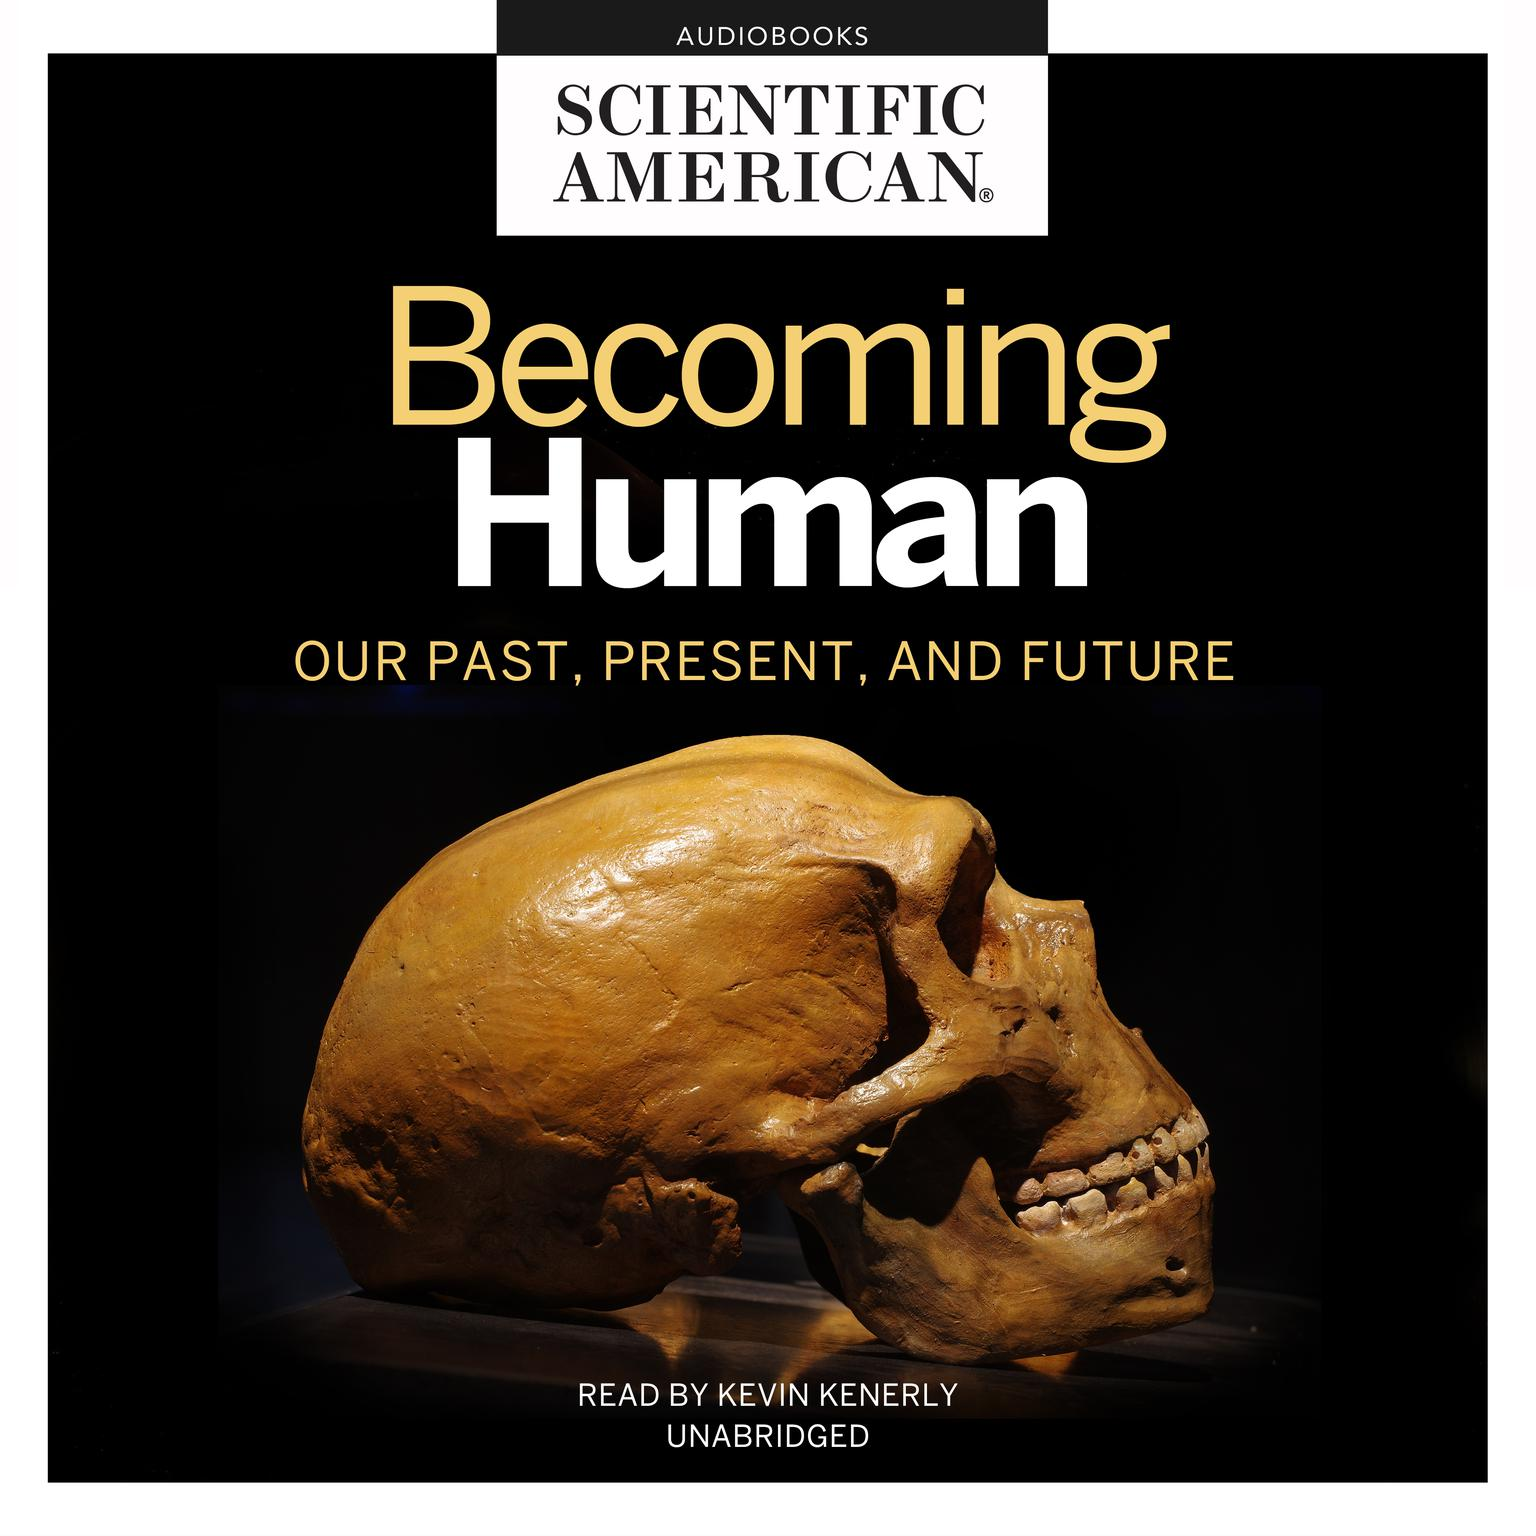 Becoming Human Audiobook, by Scientific American